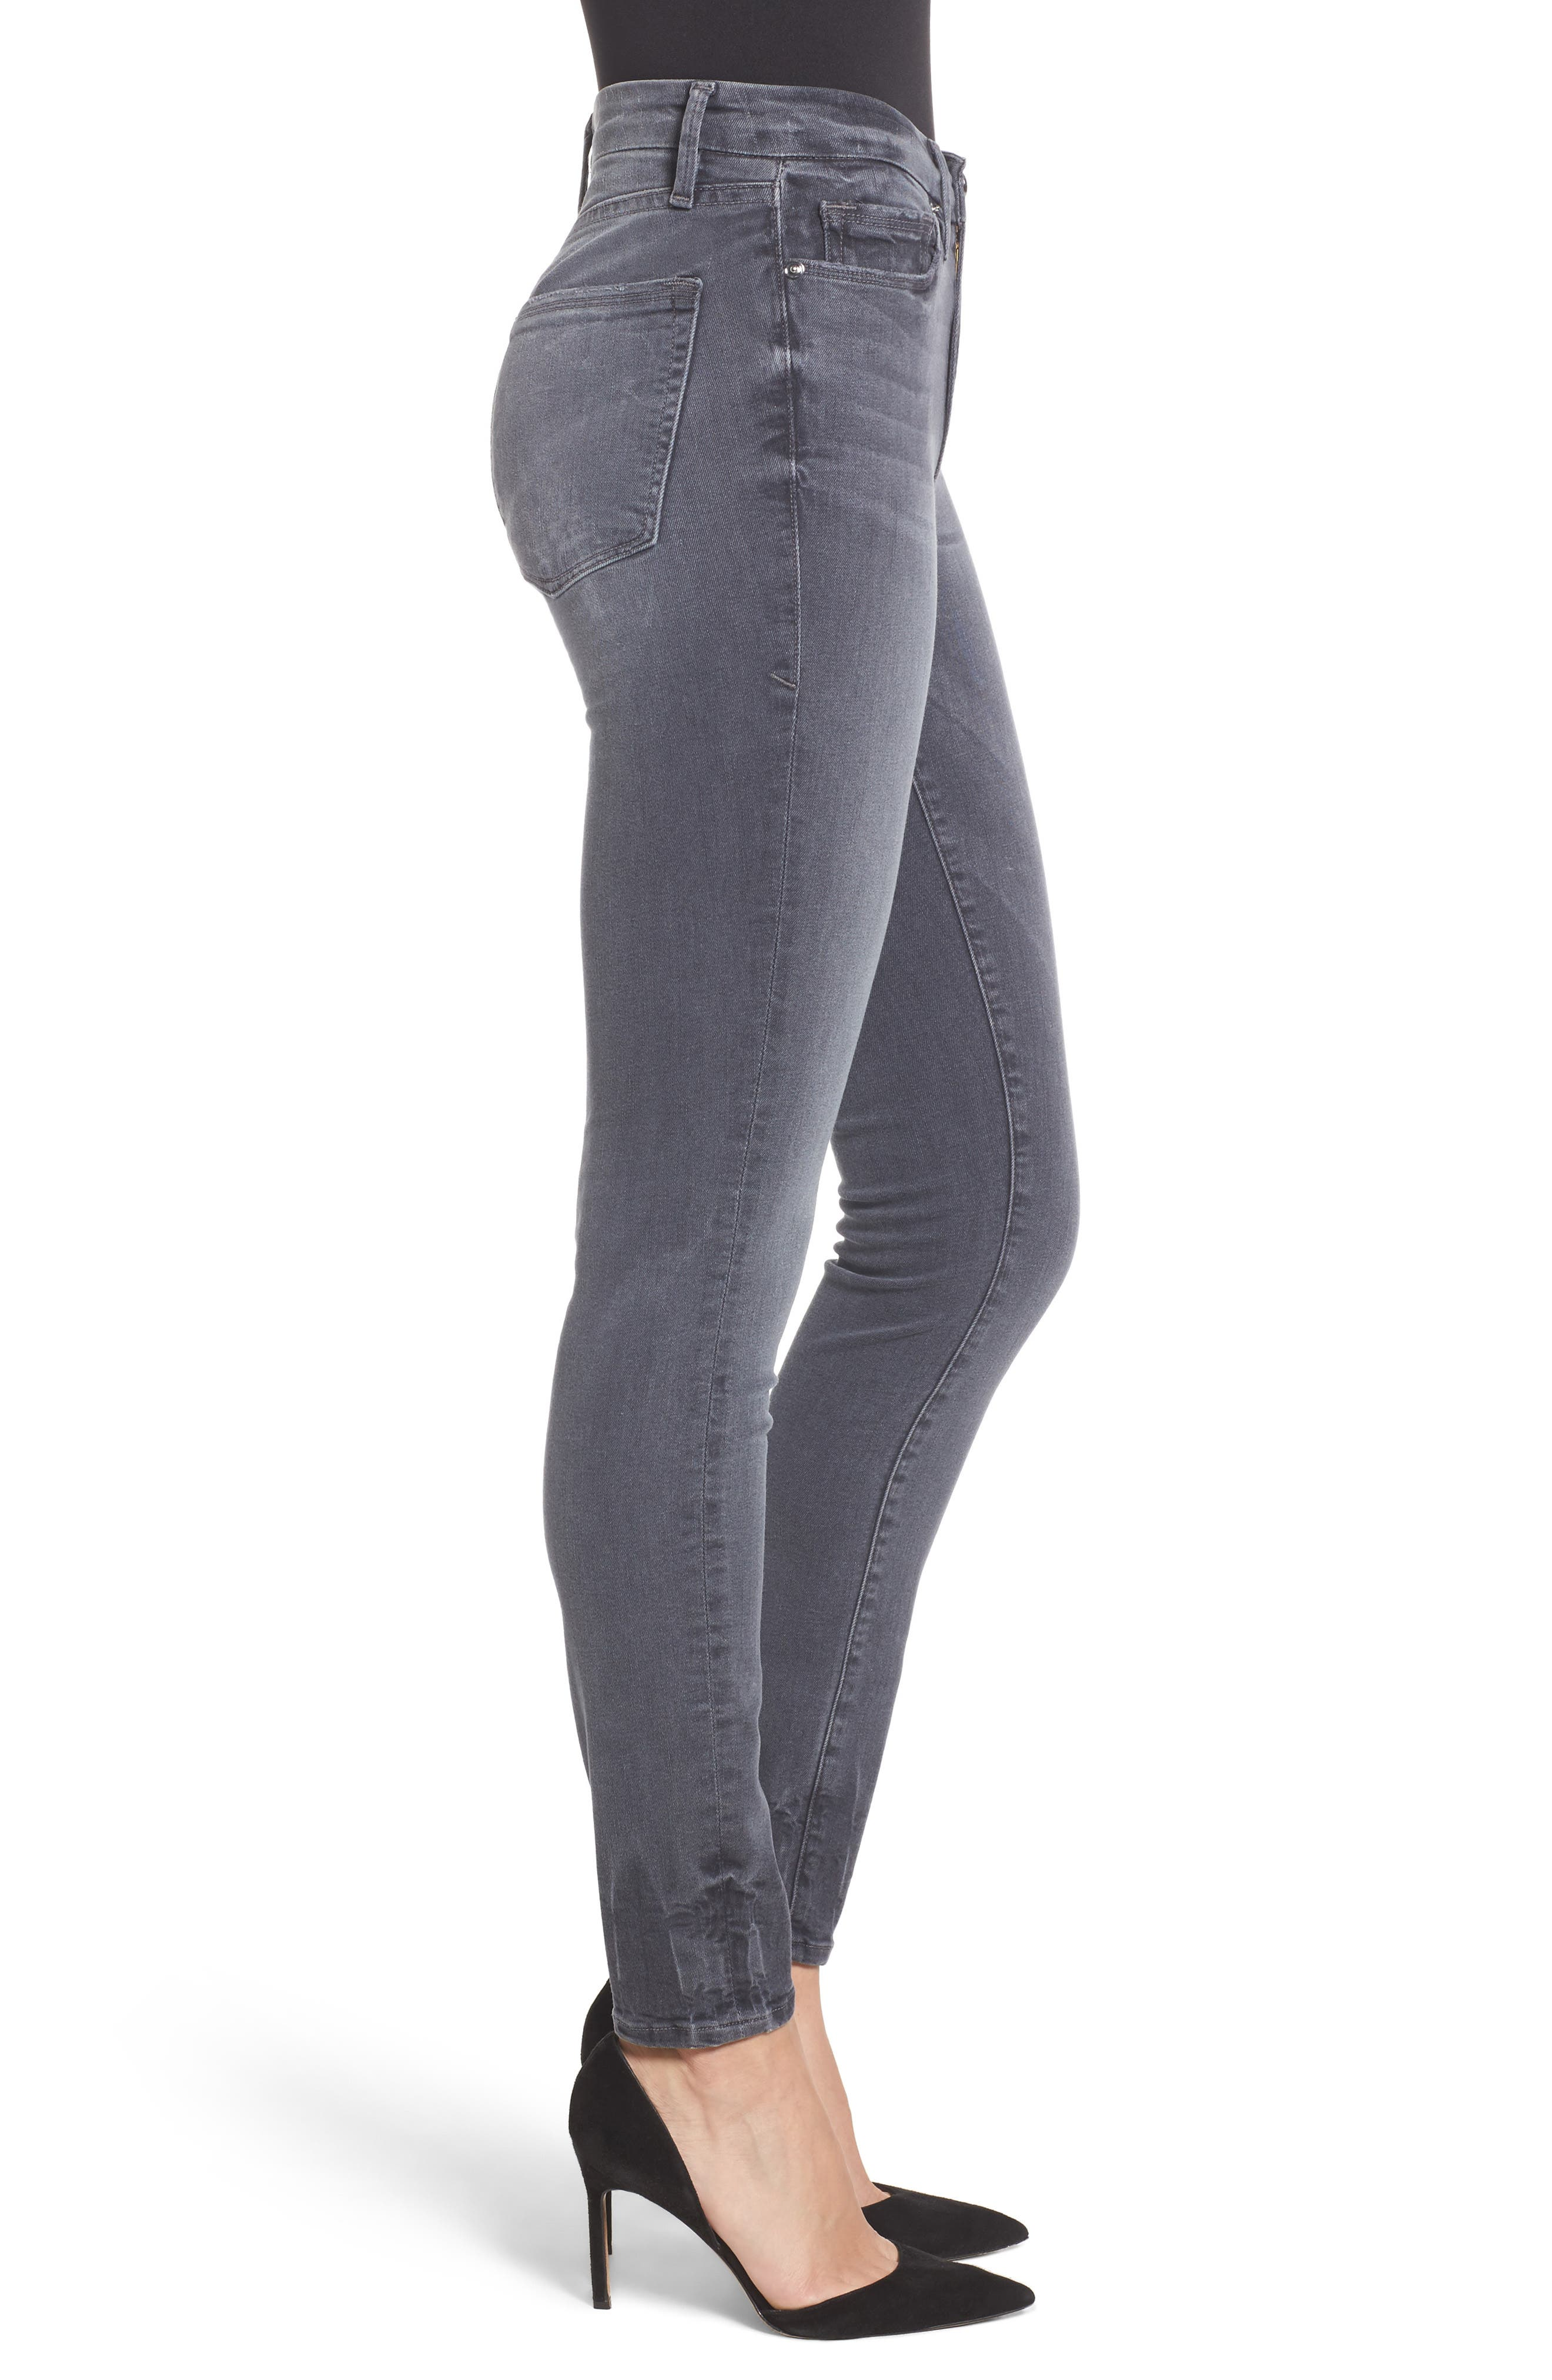 Alternate Image 3  - Good American Good Legs High Waist Skinny Jeans (Grey 002) (Extended Sizes)